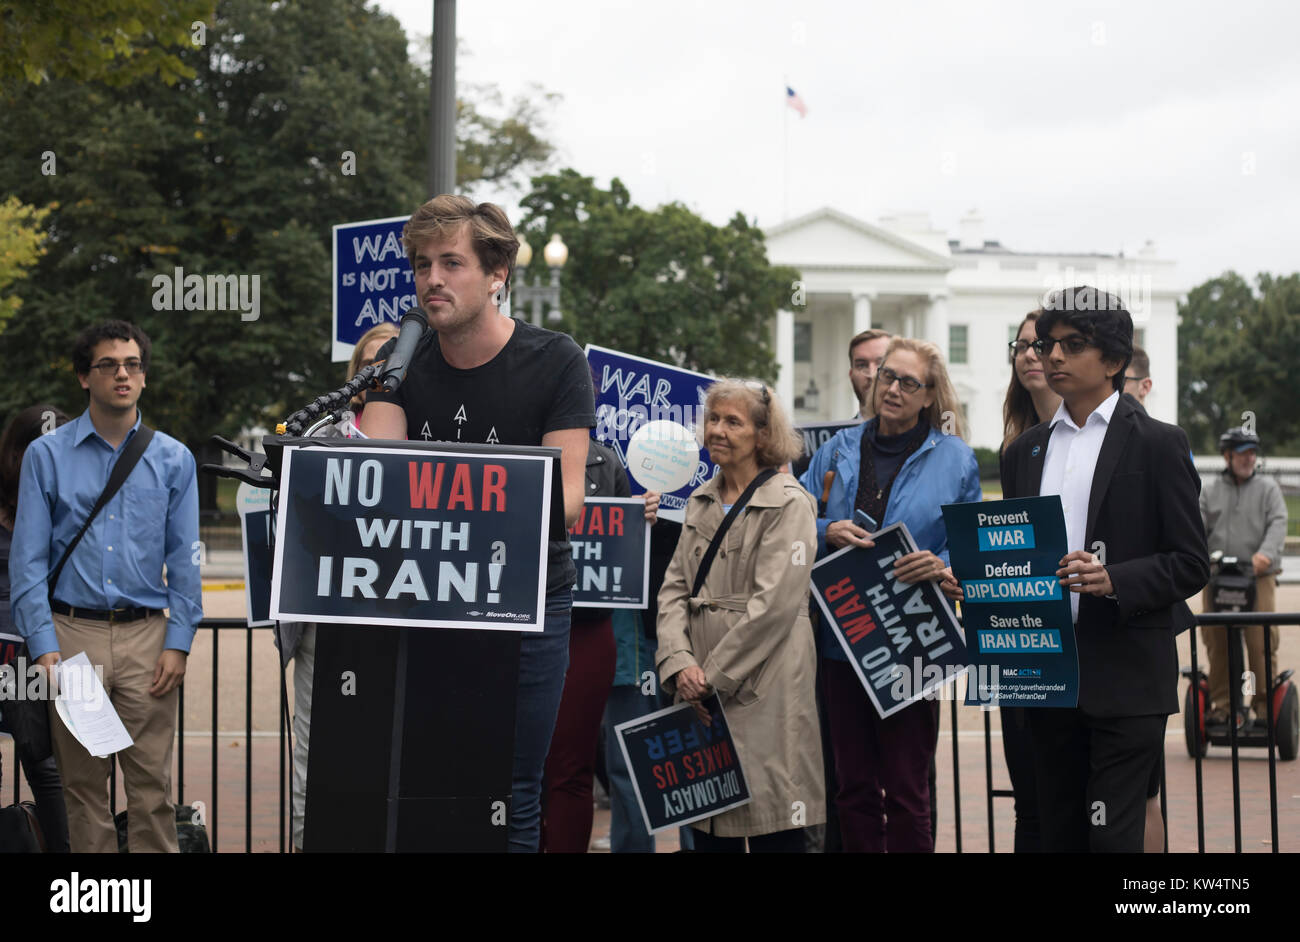 Washington, USA - 12 October 2017: Protest 'No War With Iran' in front of The White House in Washington. - Stock Image